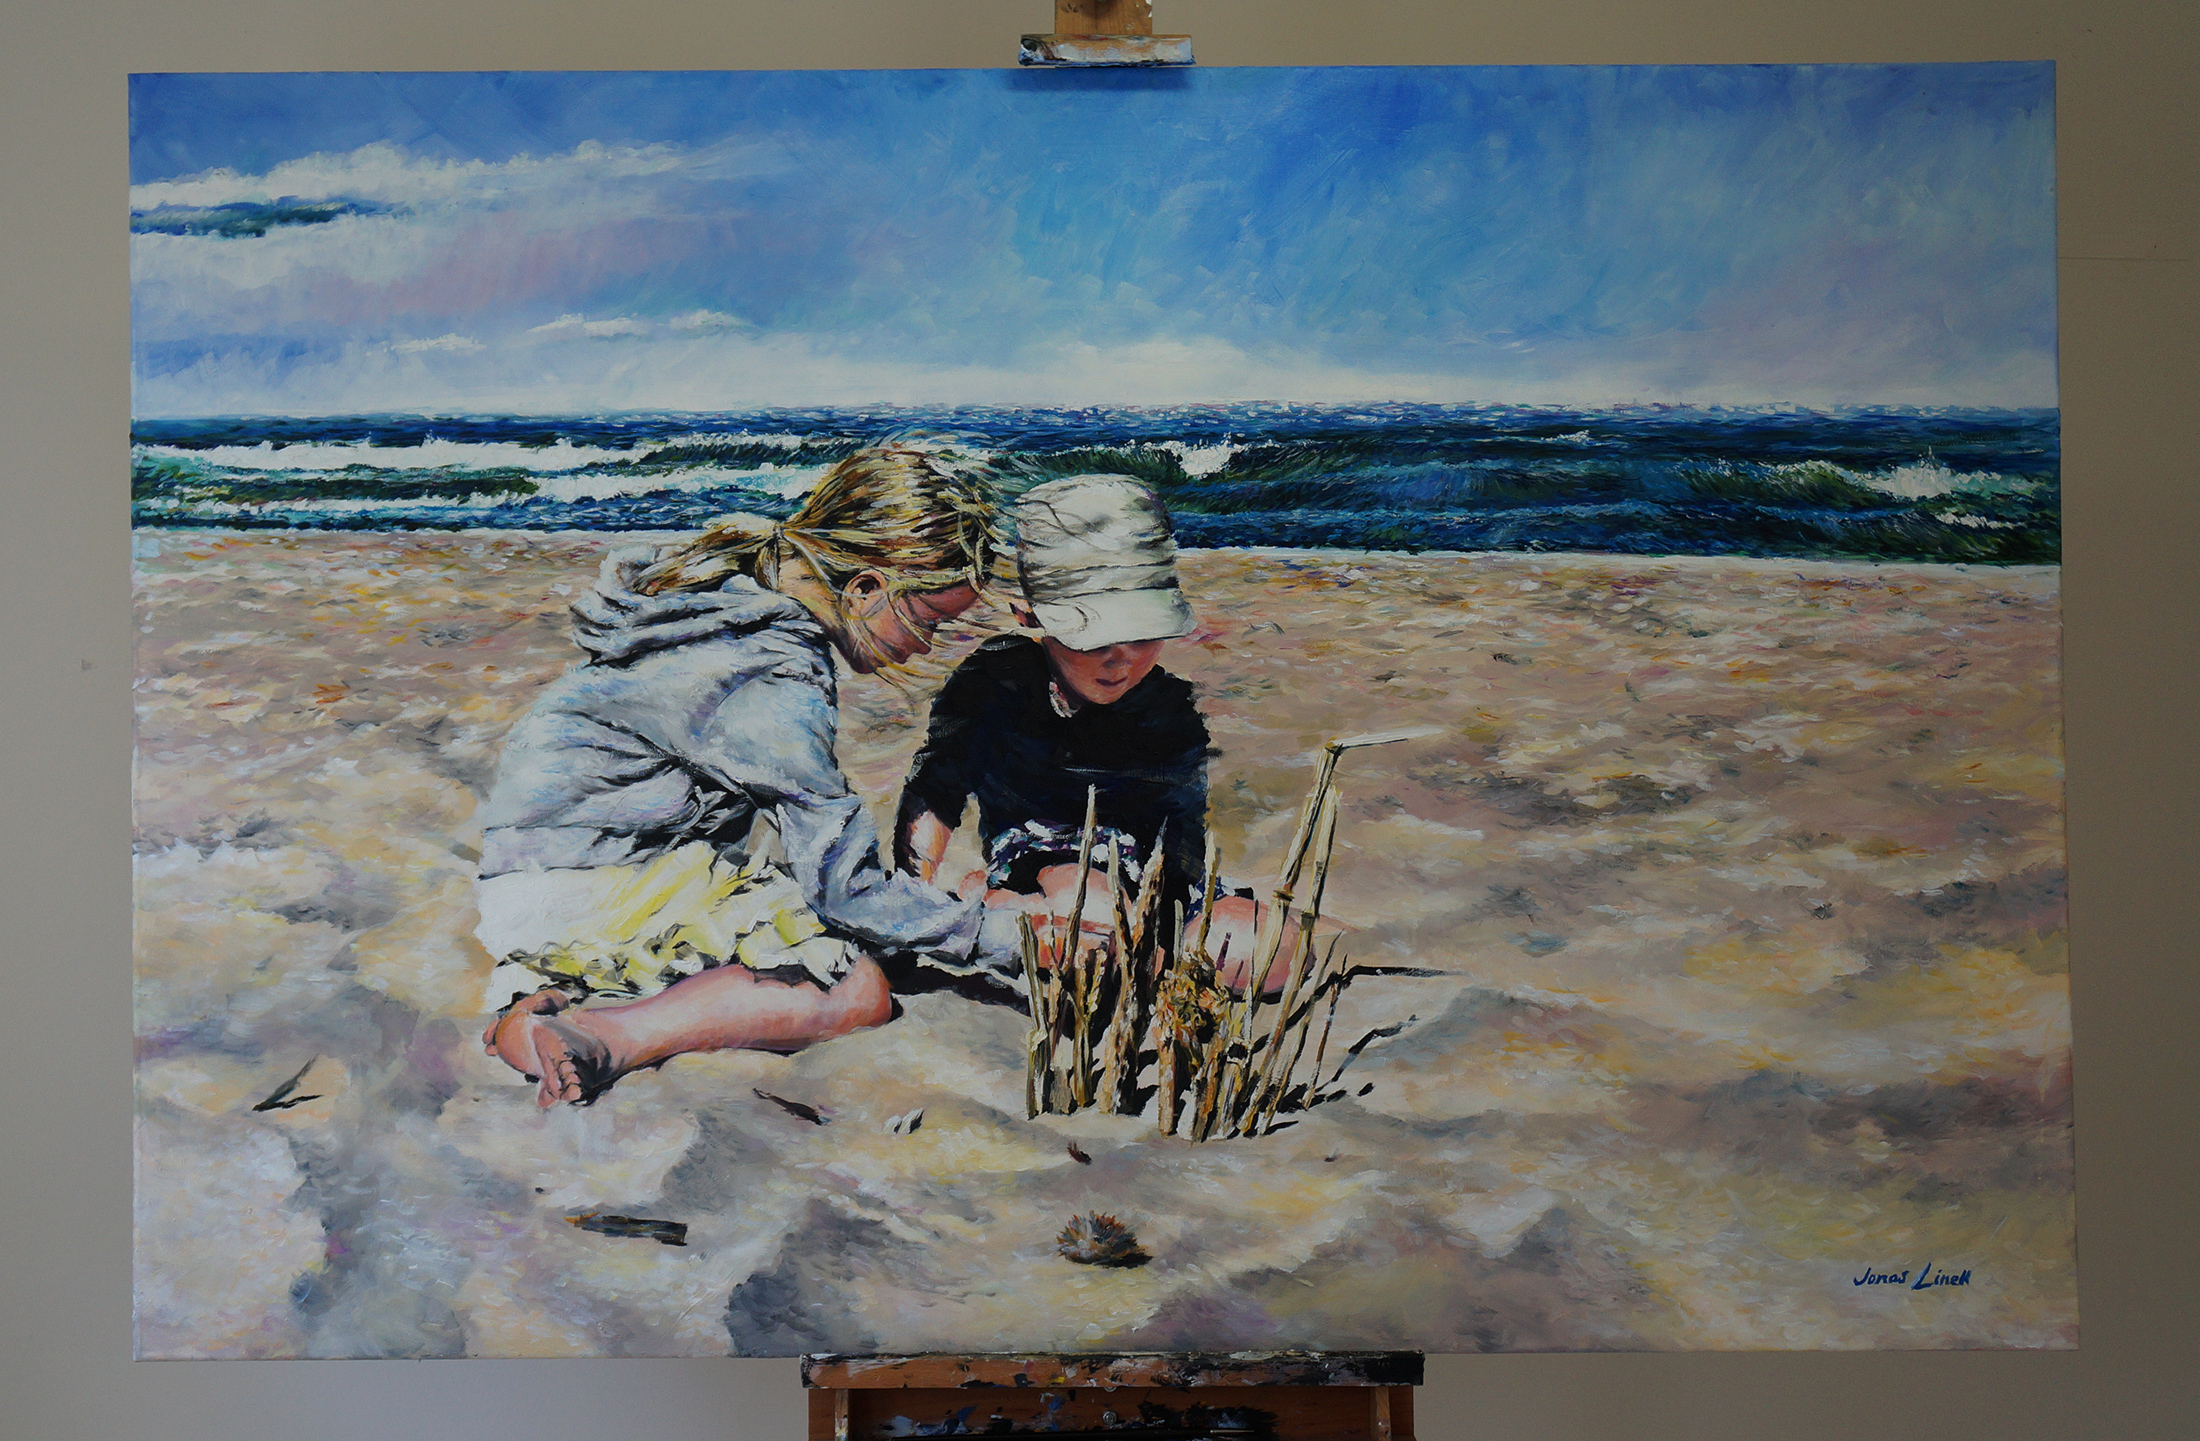 My portrait of the Ørum Children on the beach at Alicante. Commissioned by the parents. Oil on canvas, 150x100 cm.